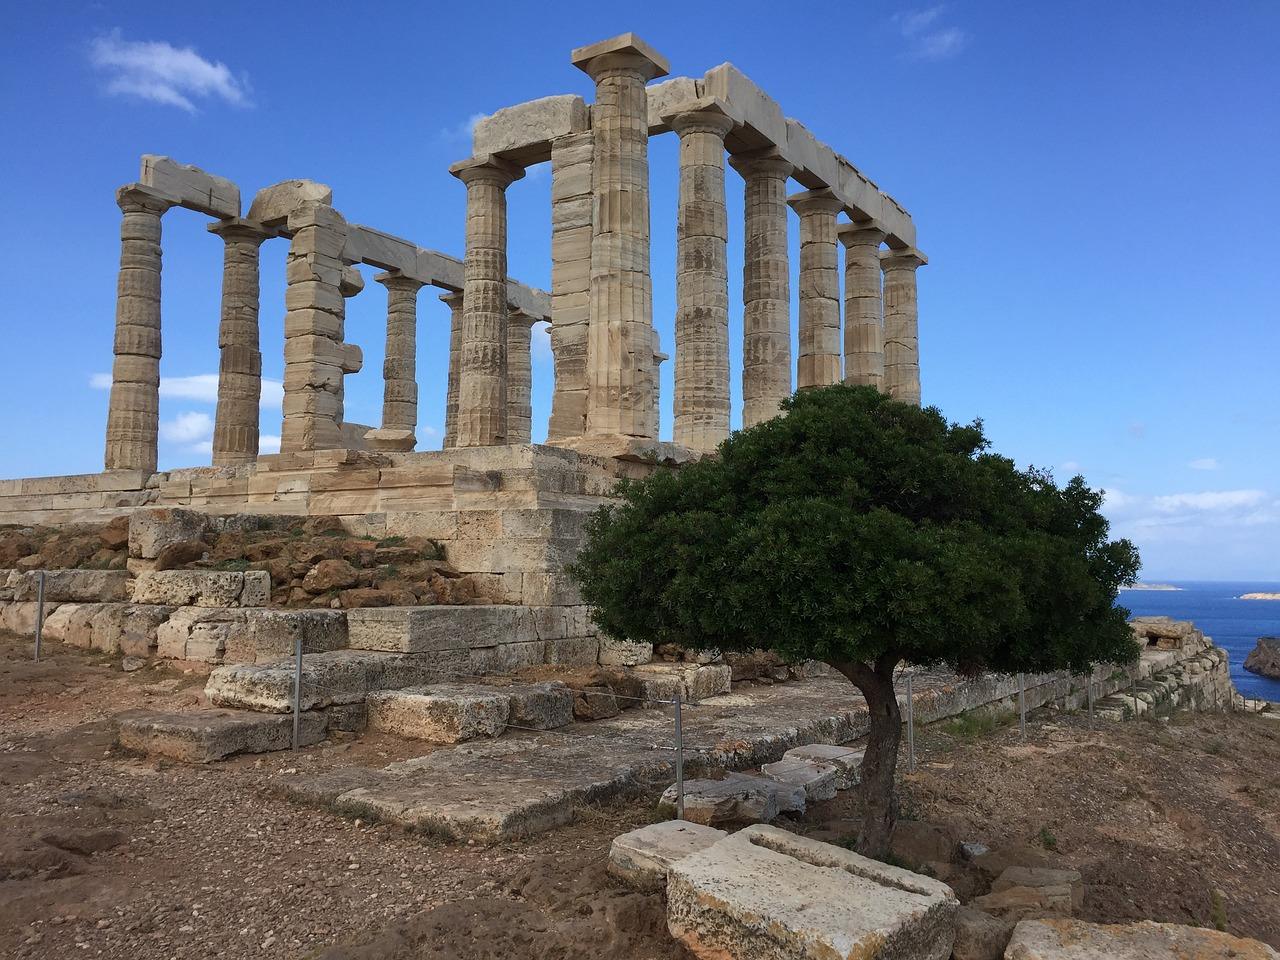 Percy Jackson Tour of Cape Sounion